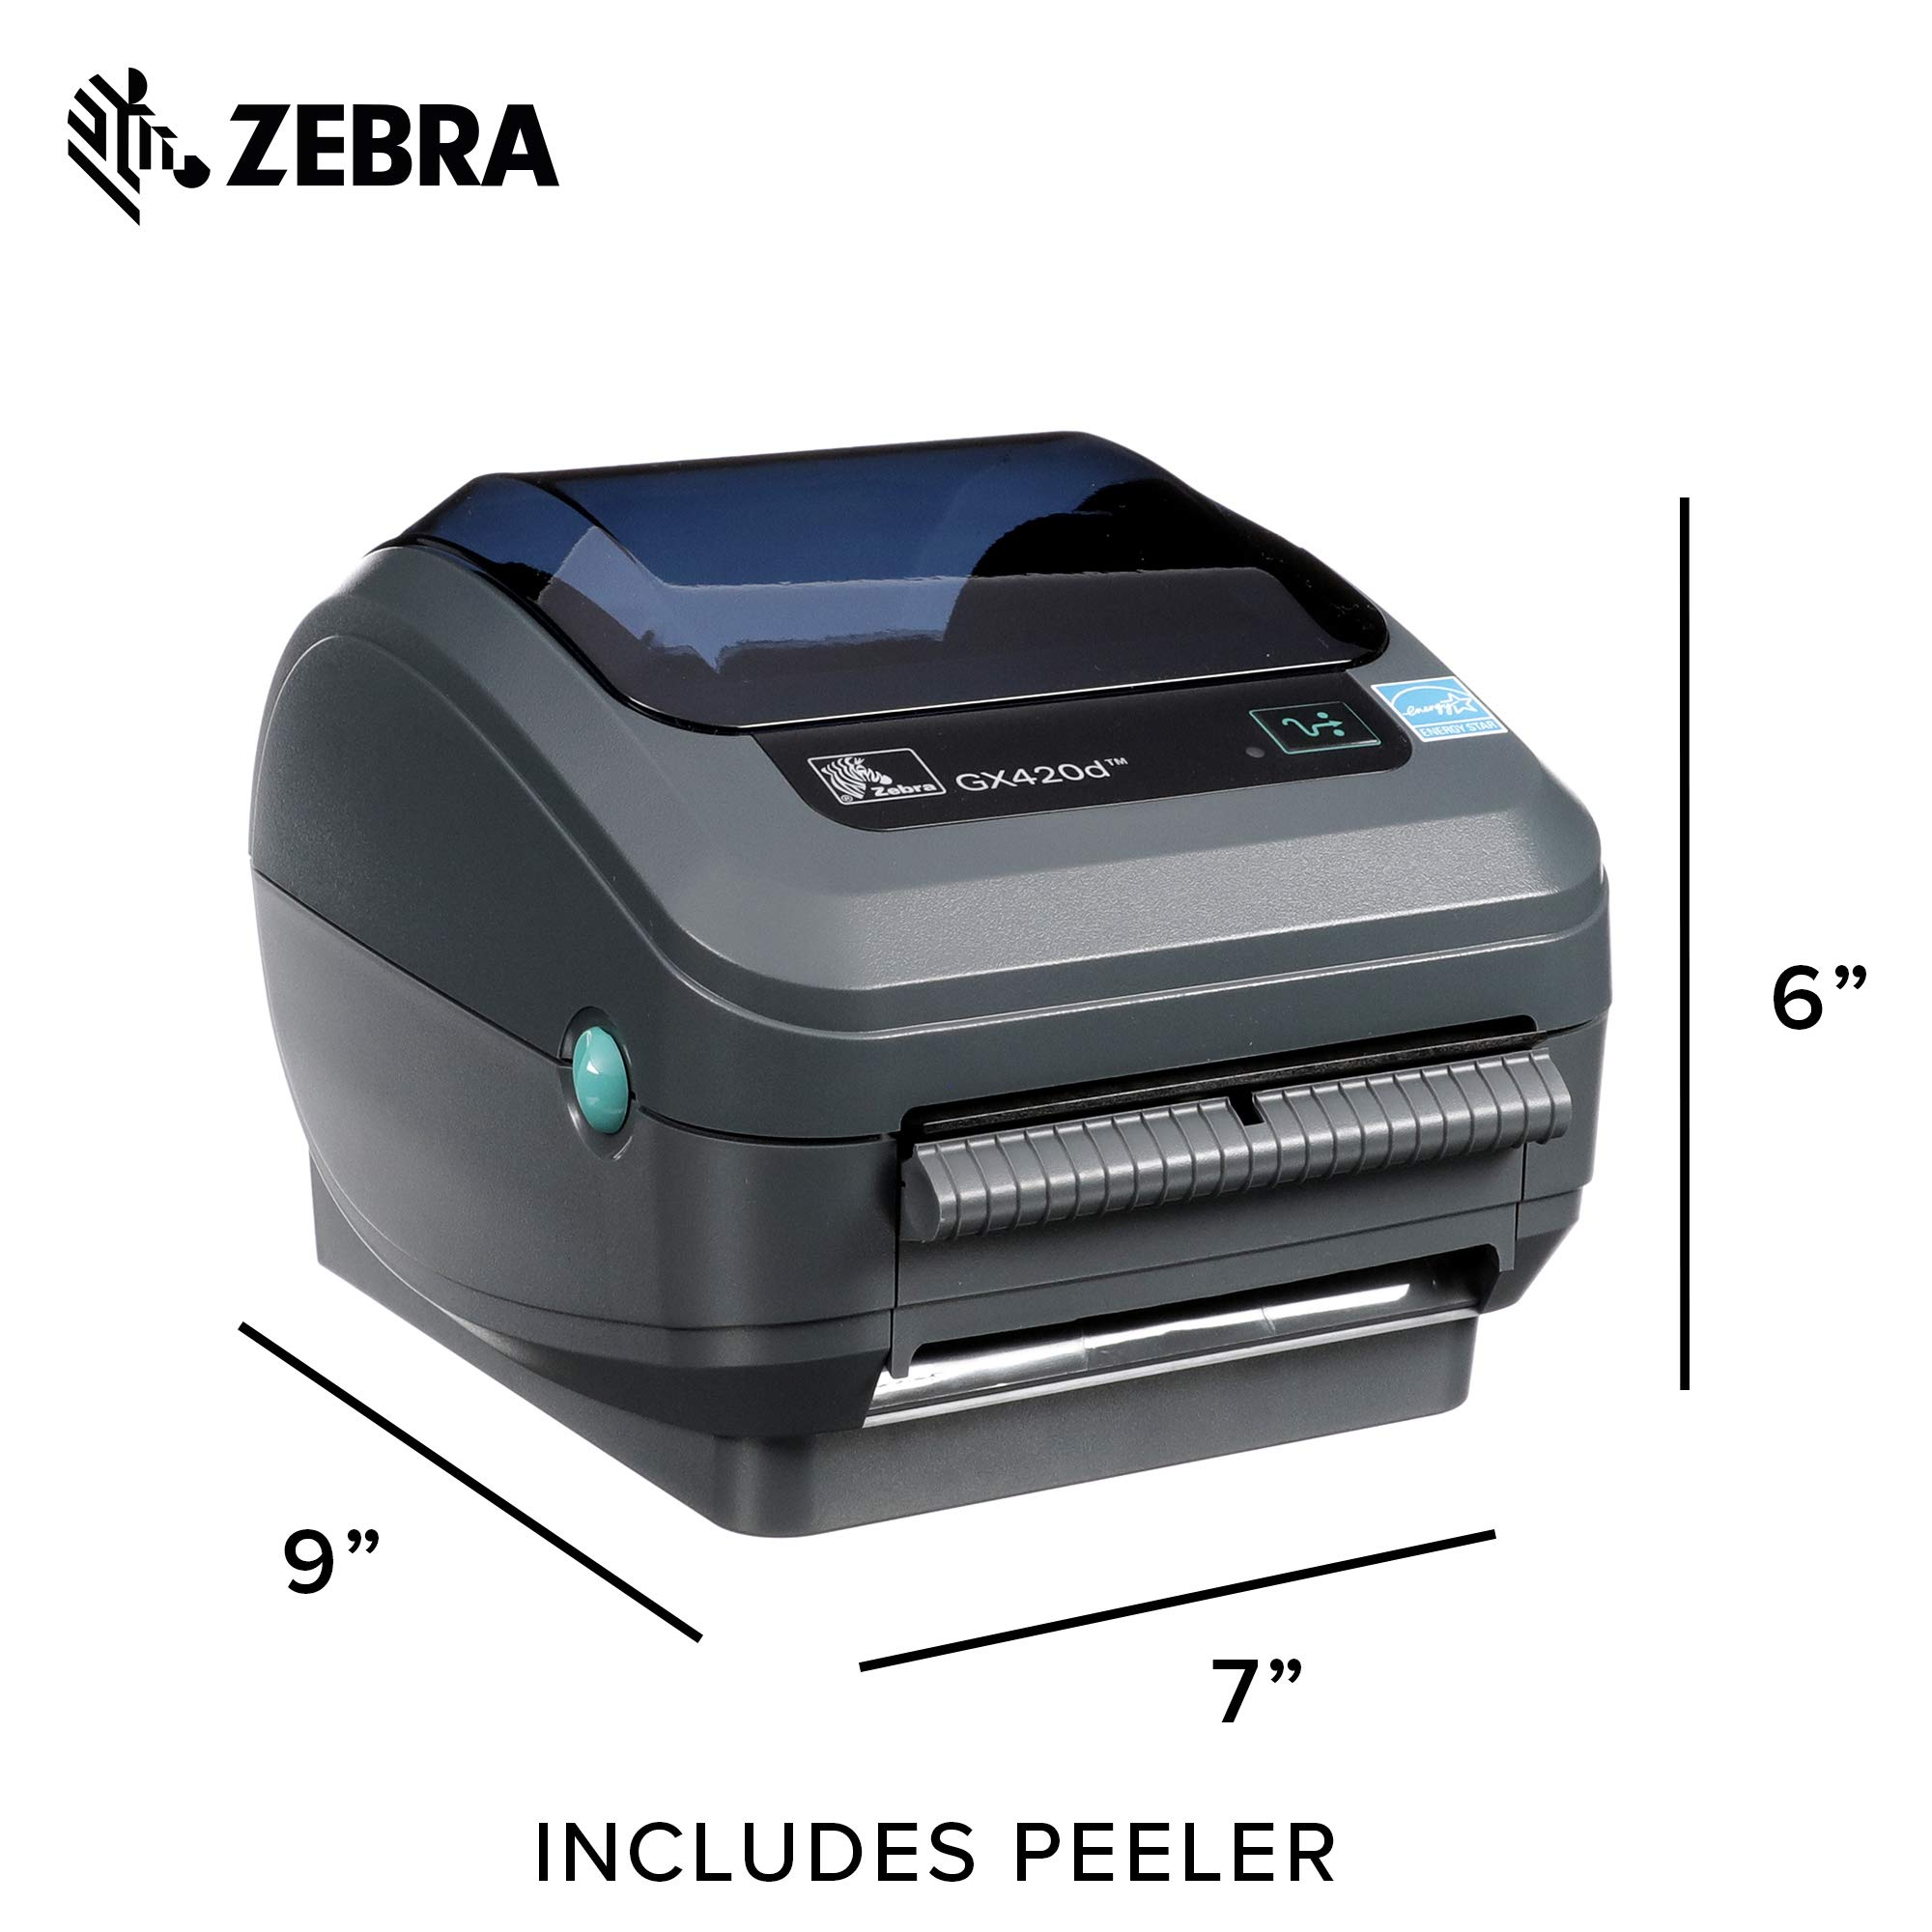 Zebra - GX420d Direct Thermal Desktop Printer for Labels, Receipts, Barcodes, Tags, and Wrist Bands - Print Width of 4 in - USB, Serial, and Parallel Port Connectivity (Includes Peeler) by ZebraNet (Image #6)